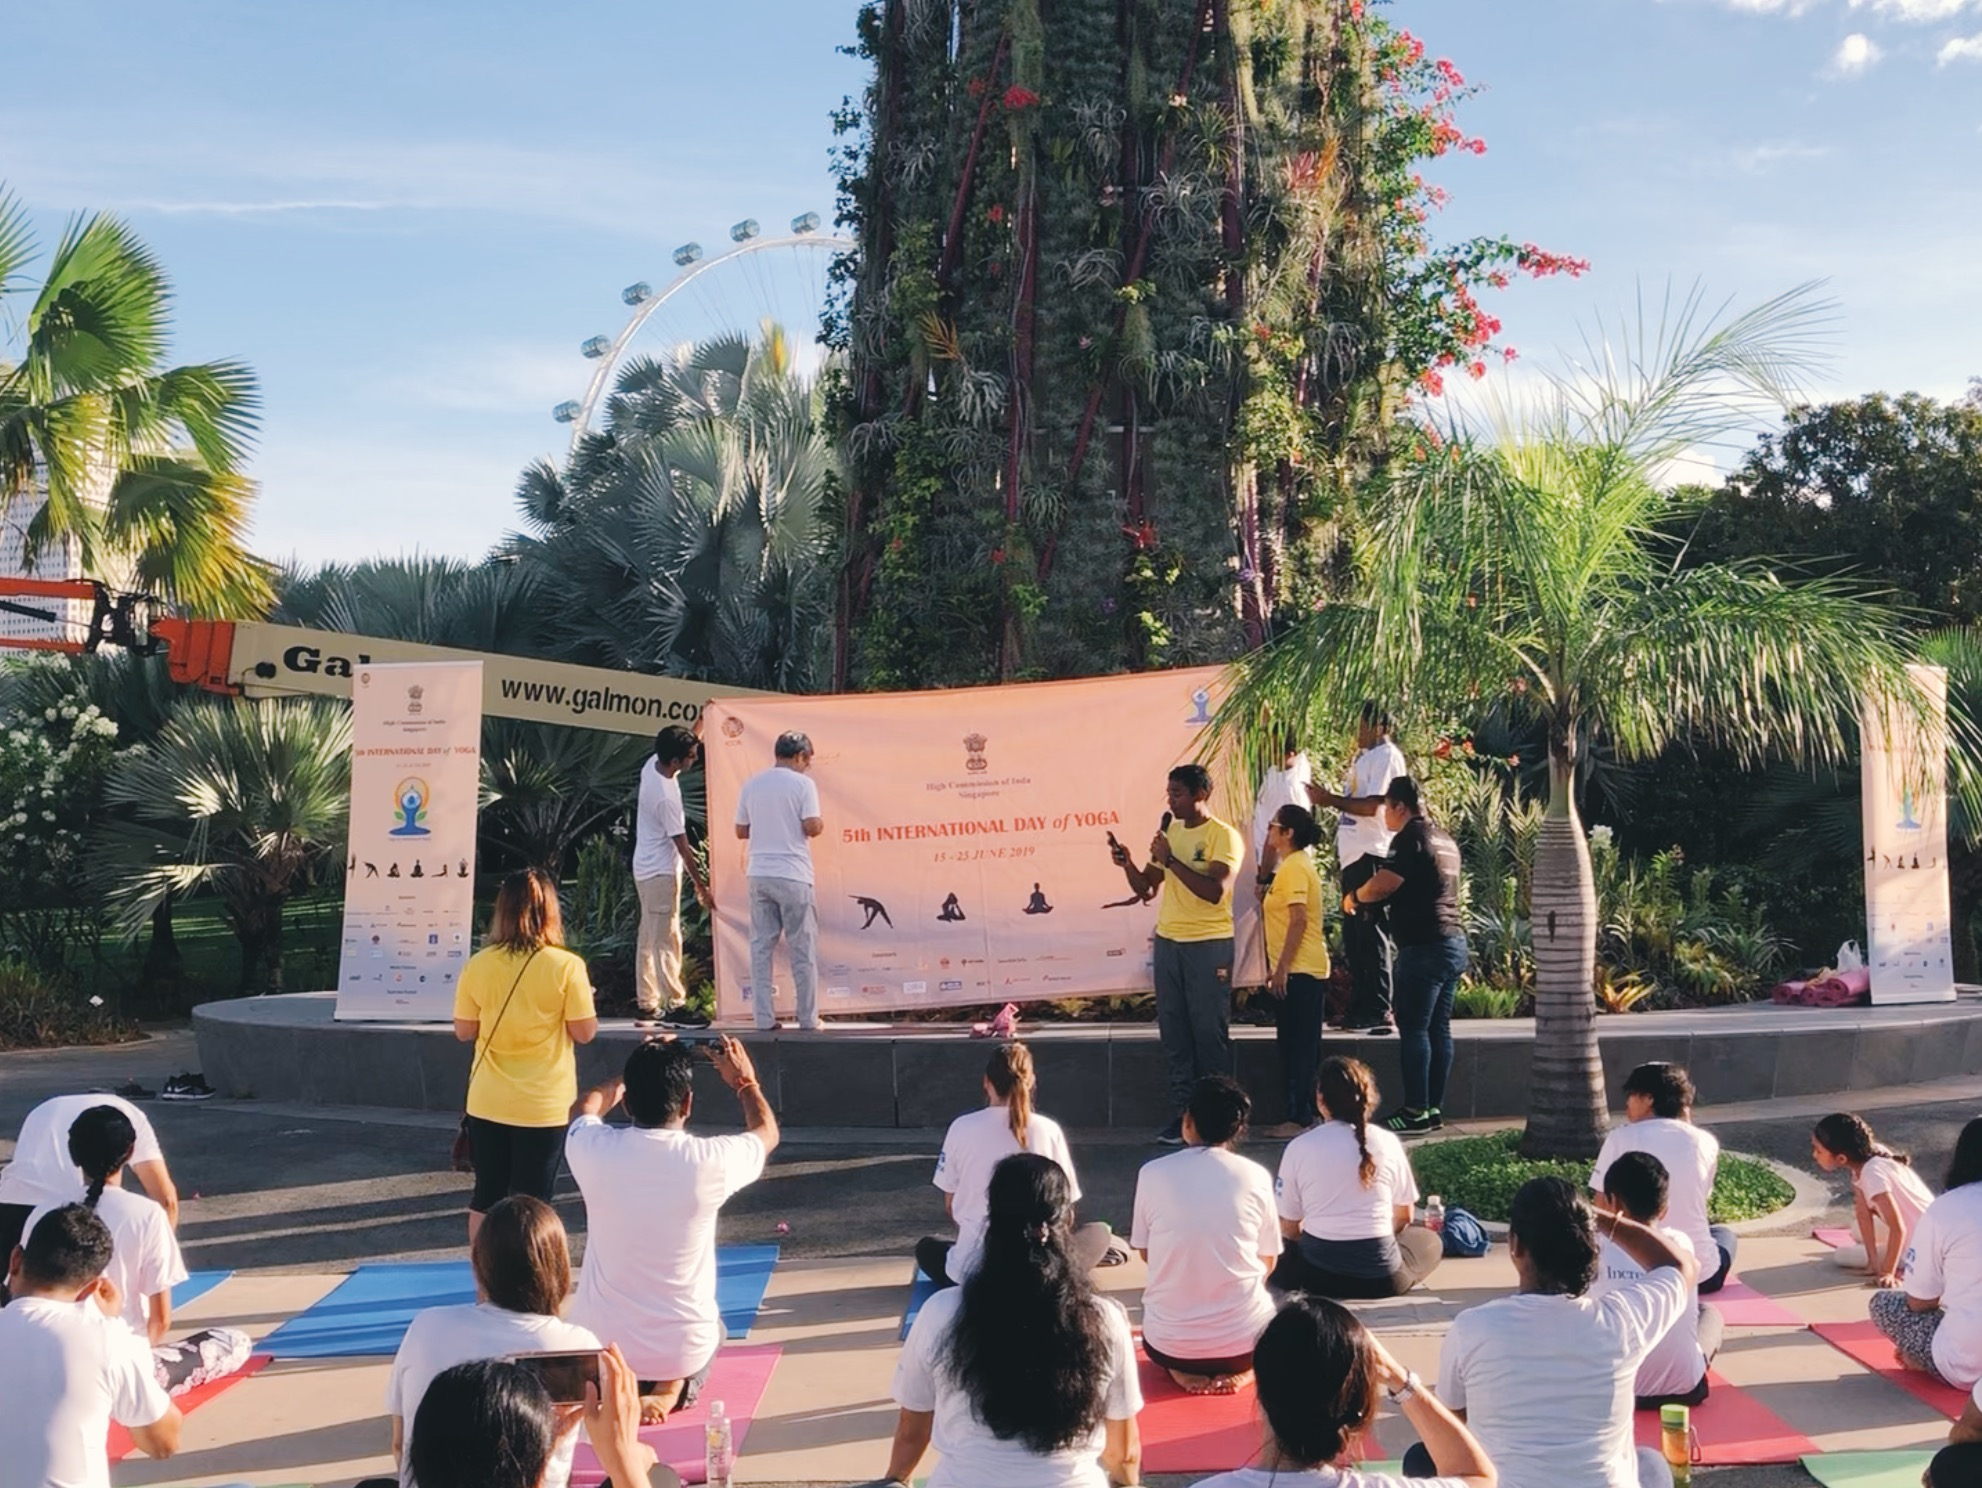 High Commissioner of India to Singapore, Mr Jawed Ashraf, inaugurating the International Day of Yoga 2019. Photo: Connected to India